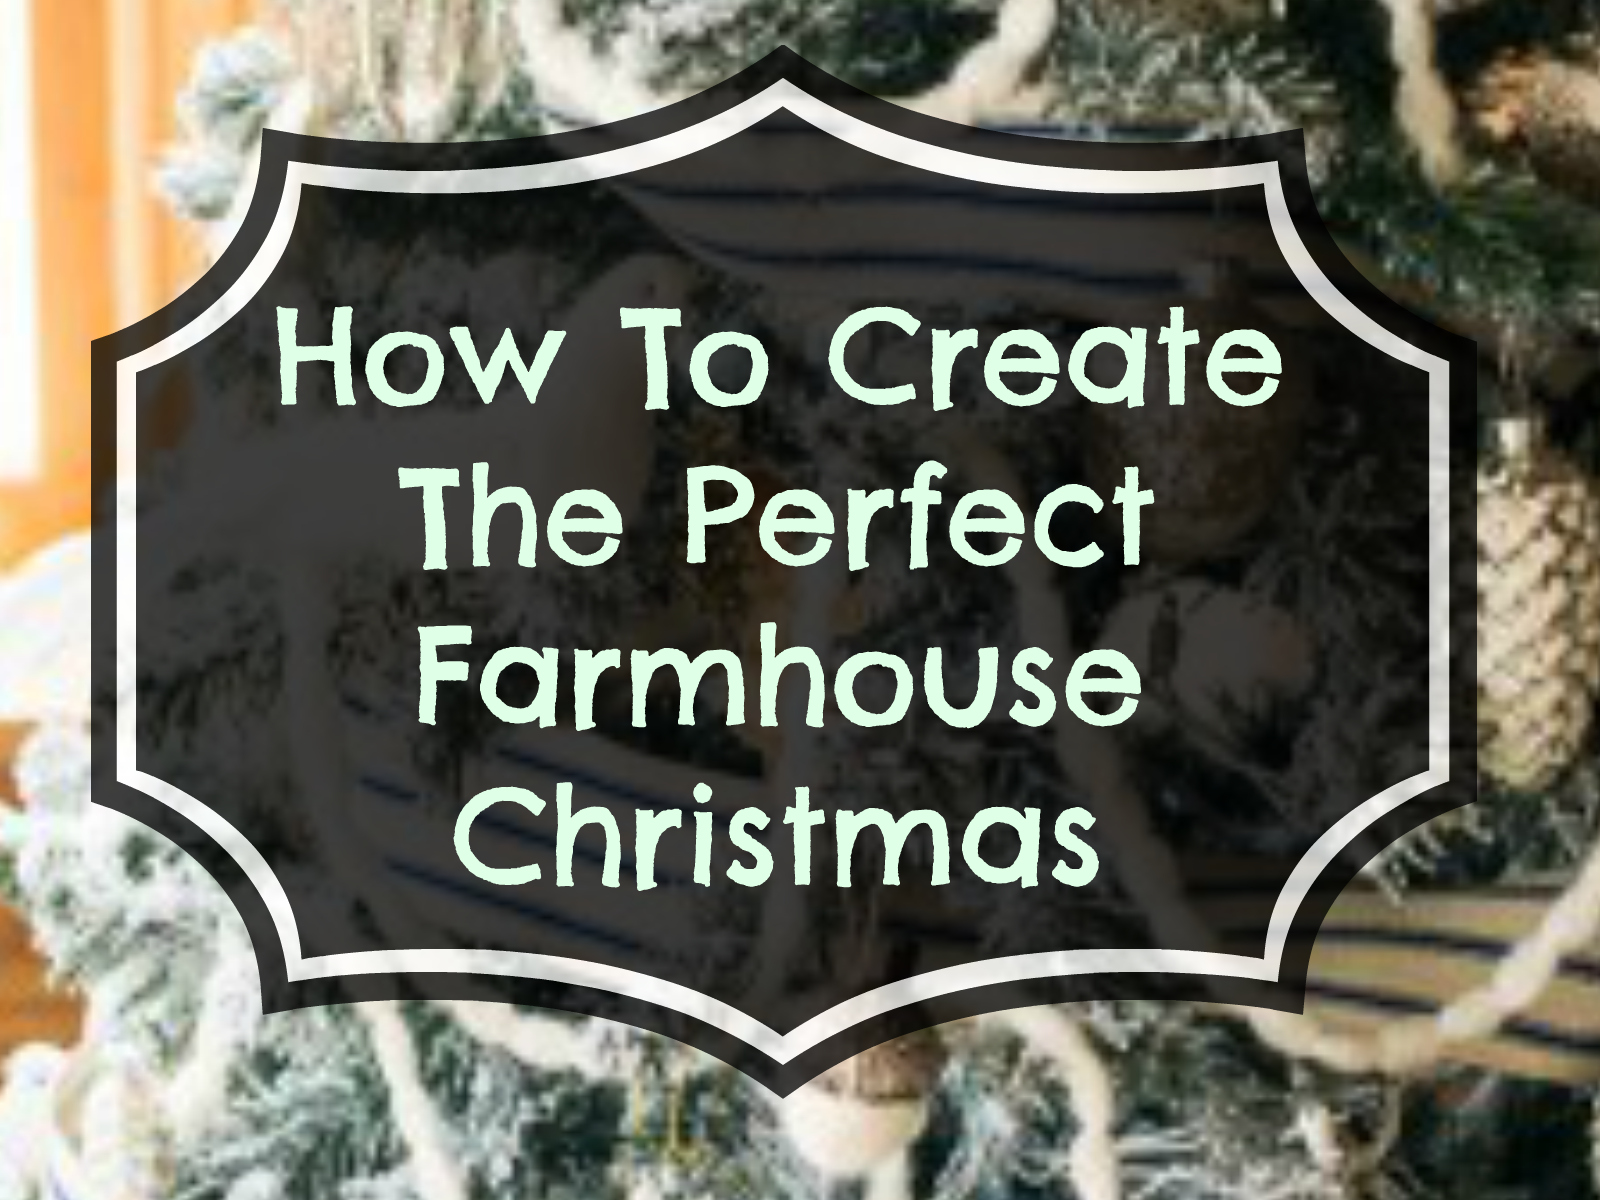 How To Create The Perfect Farmhouse Christmas!